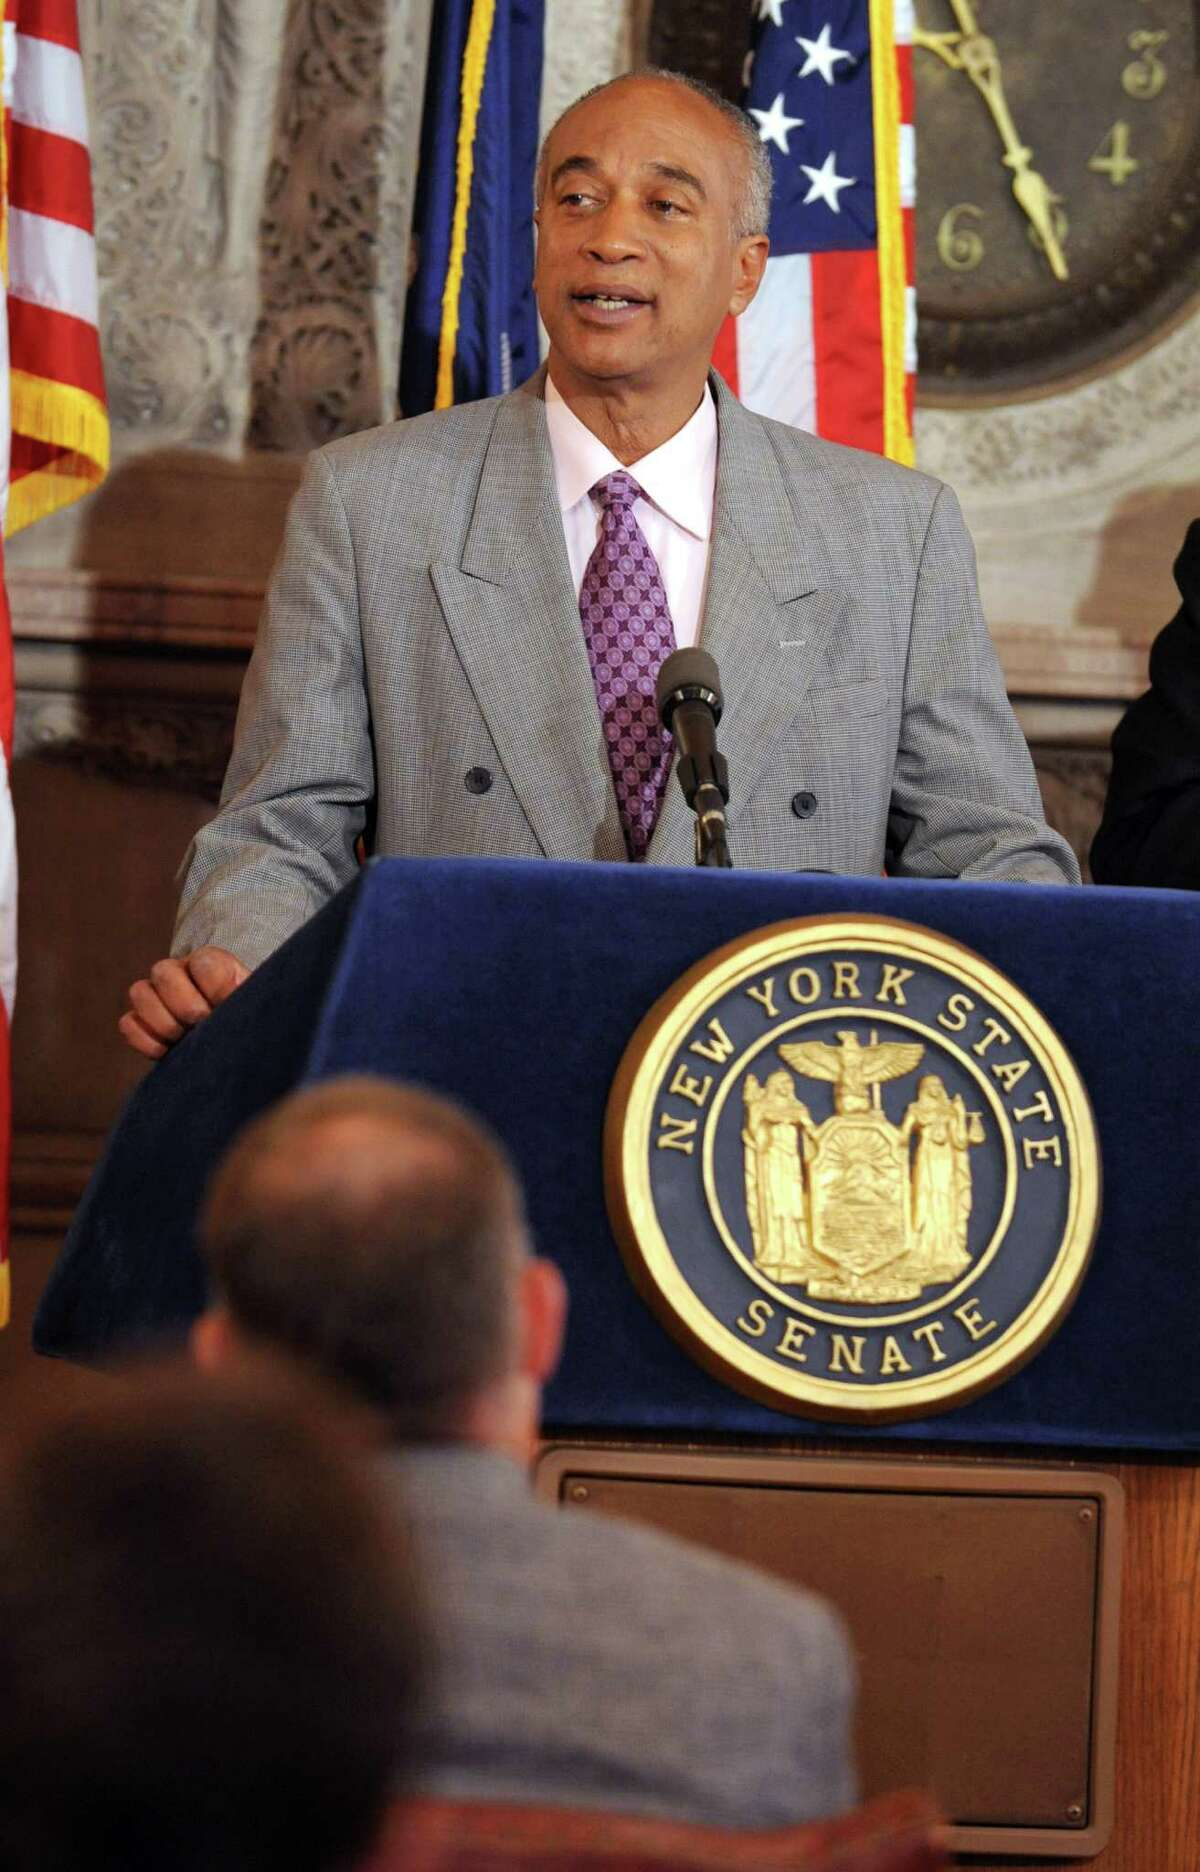 New York Assemblyman Gary Pretlow speaks during a press conference at the Capitol Tuesday, Oct. 16, 2012 in Albany, N.Y. The leaders released a report commissioned by the New York Horse Racing and Agriculture Industry Alliance on the economic impact of the Equine industry in NYS. (Lori Van Buren / Times Union)